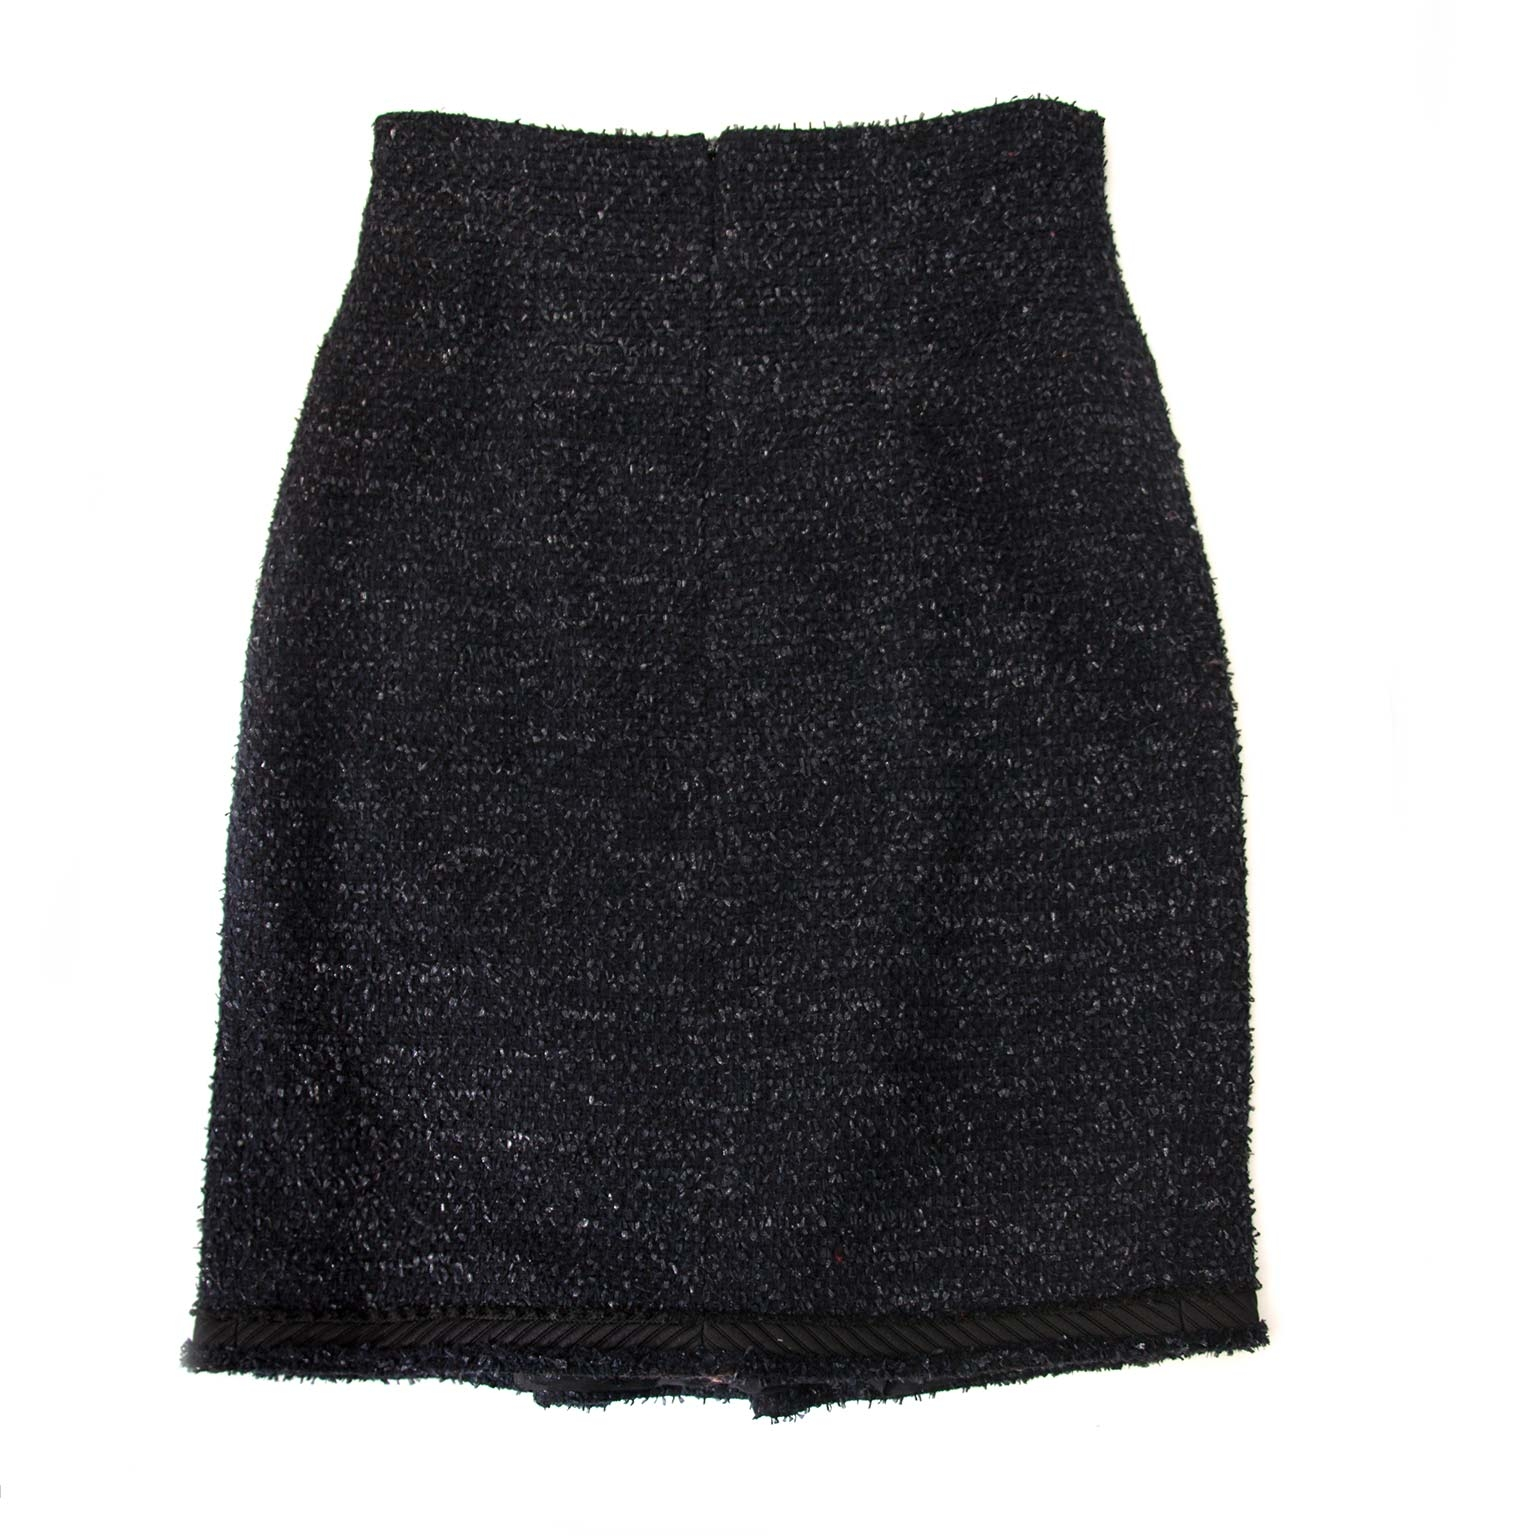 Chanel Black & Blue Tweed Skirt - Size 38 (FR) Buy authentic designer Chanel secondhand skirt clothing at Labellov at the best price. Safe and secure shopping. Koop tweedehands authentieke Chanel rok rokken kleding kledij bij designer webwinkel labellov.